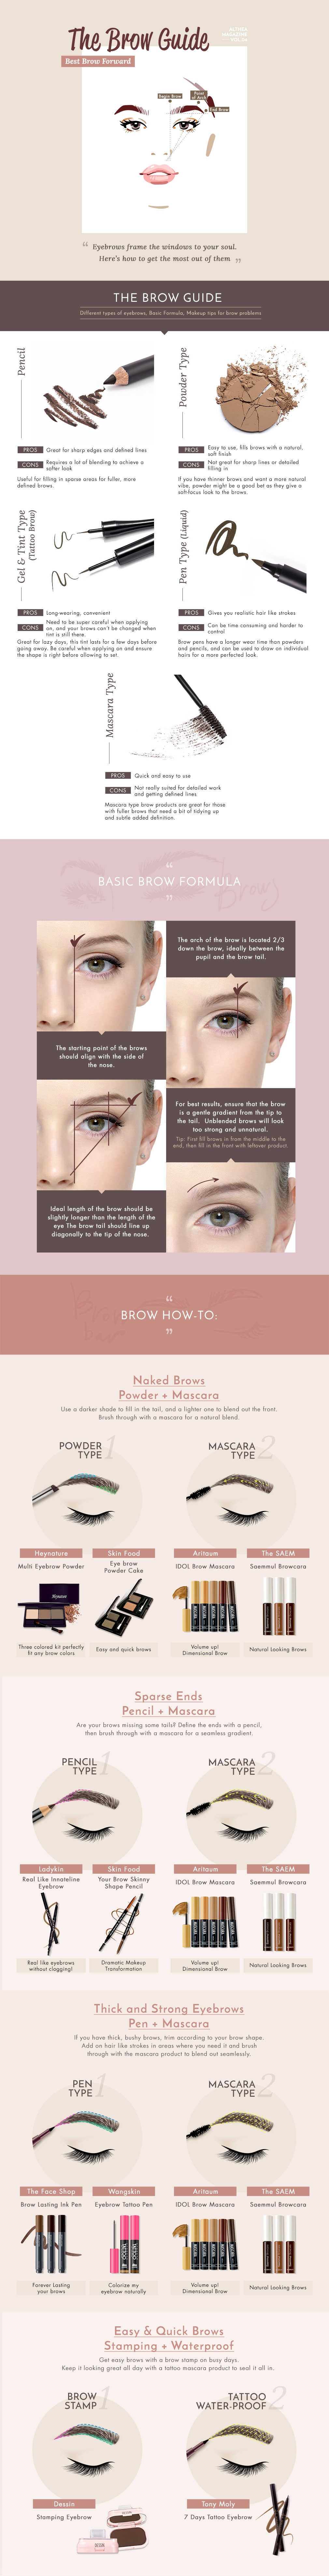 [Althea Magazine #4] The Brow Guide